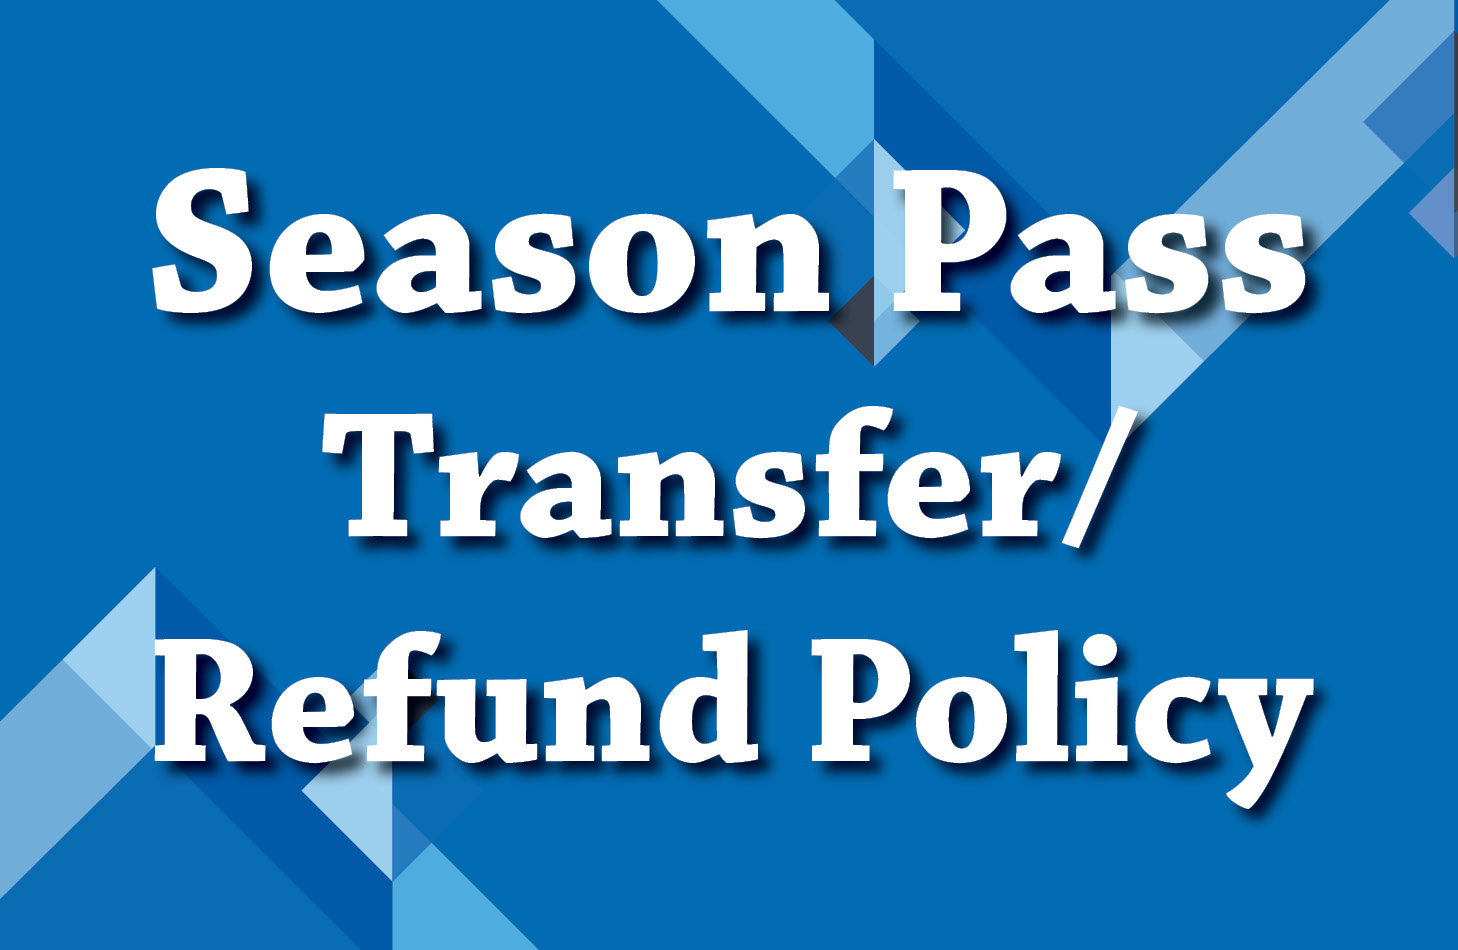 Transfer and Refund Policy